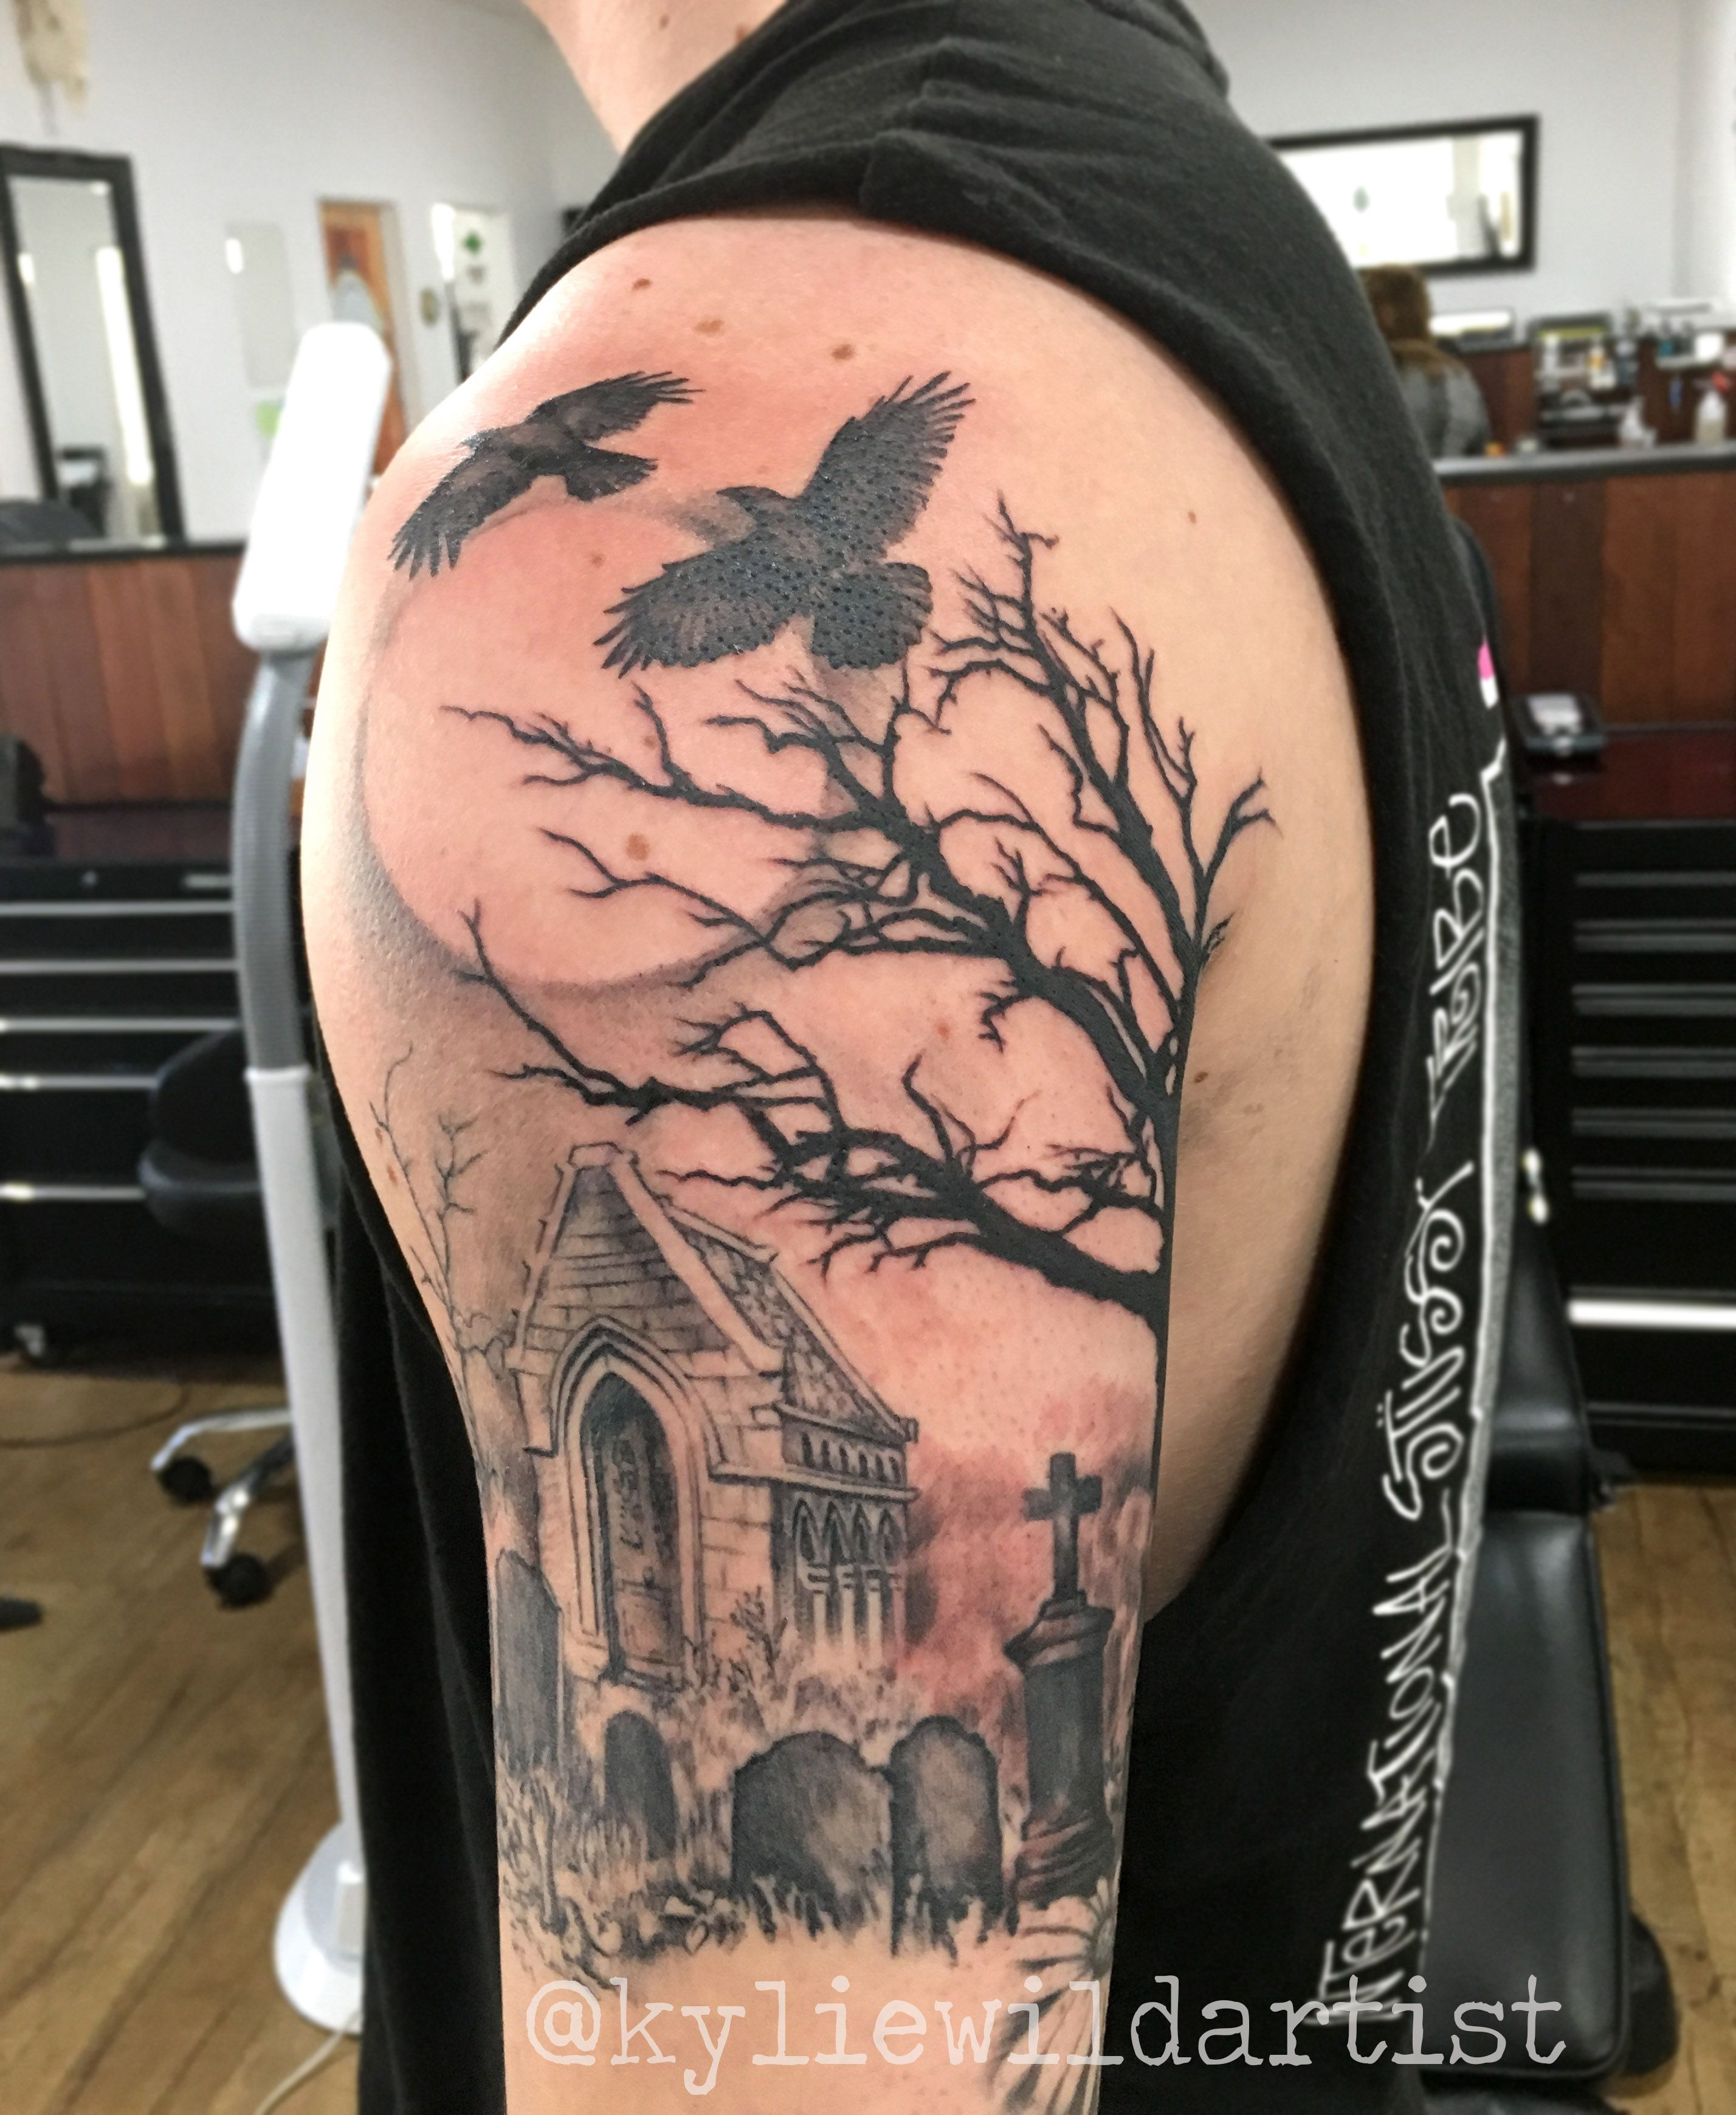 graveyard tree crows moon tombstones tattoo sleeve in progress by kylie wild heslop. Black Bedroom Furniture Sets. Home Design Ideas